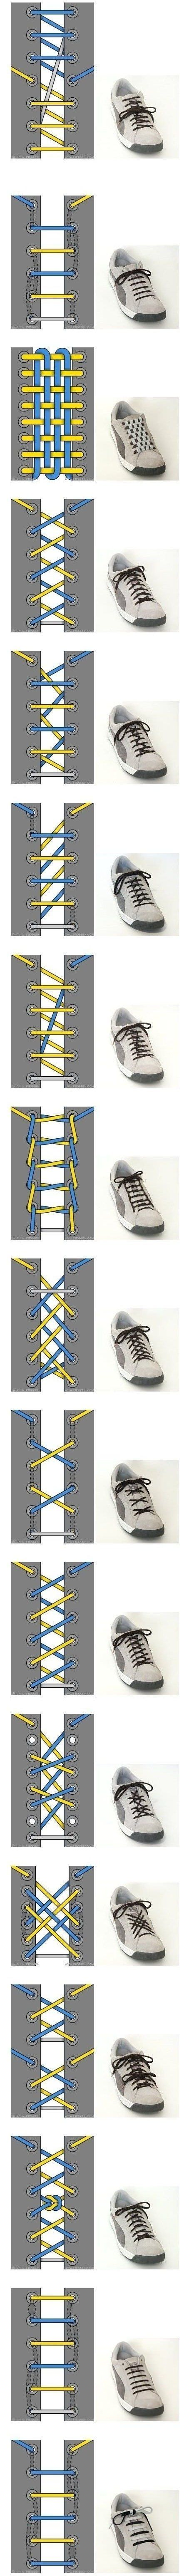 shoelaces.jpg 454×6,192ピクセル